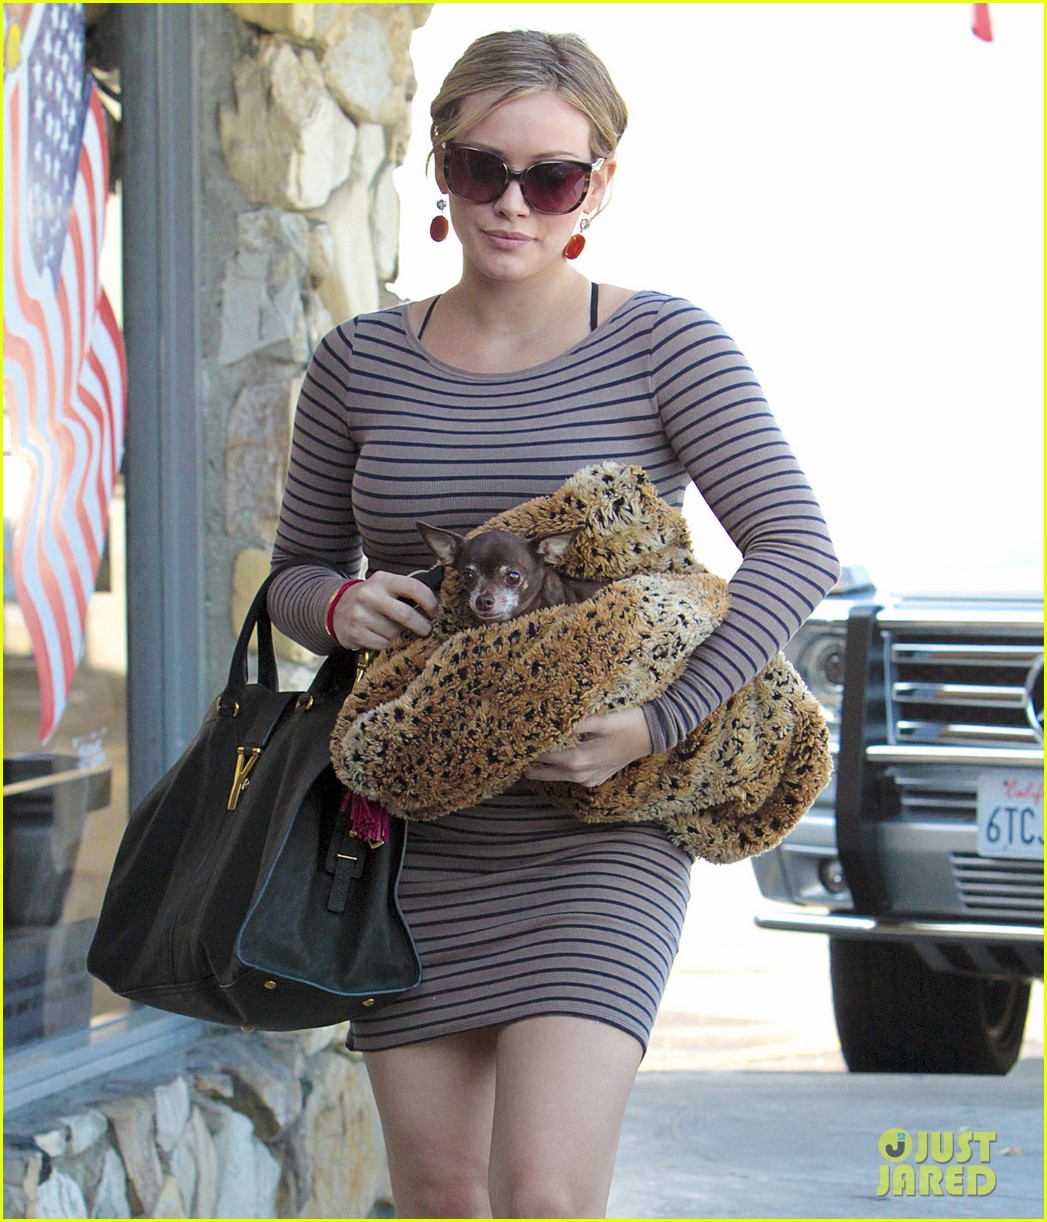 Hilary Duff Visits The Vet: Photo 2591091